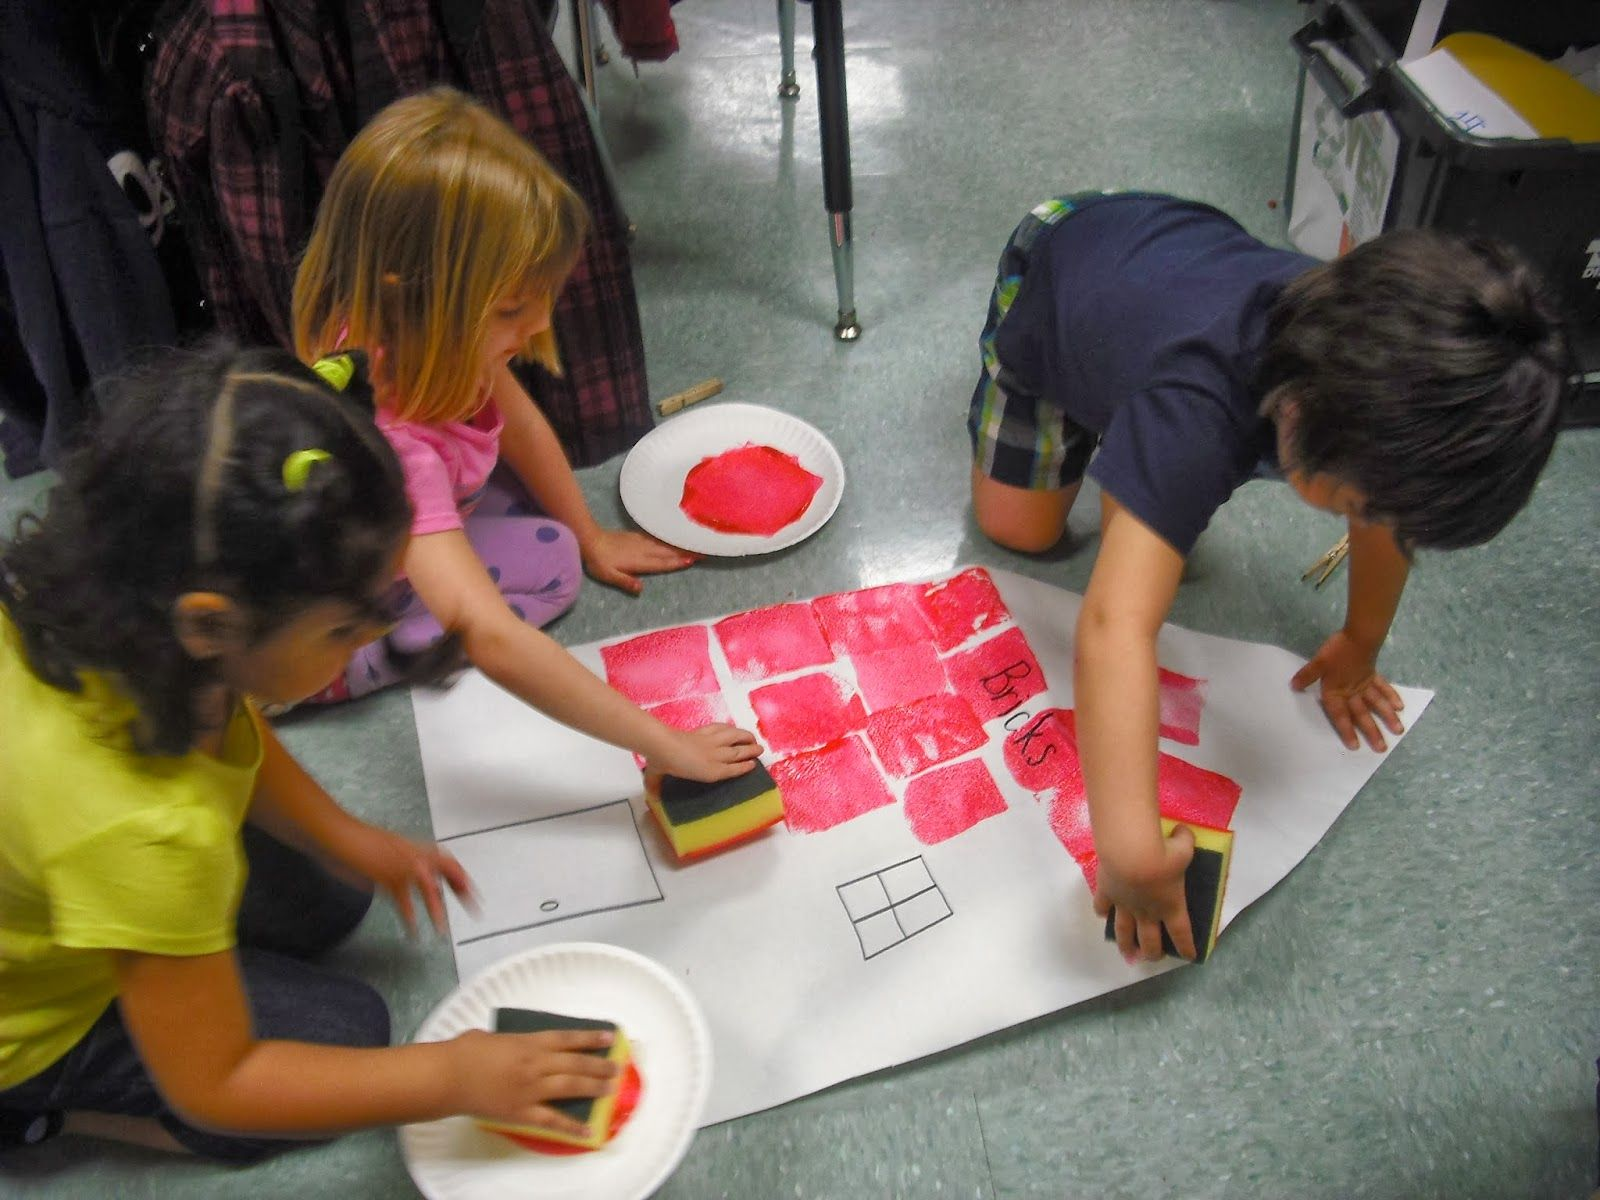 Three Little Pigs Sprinkles To Kindergarten